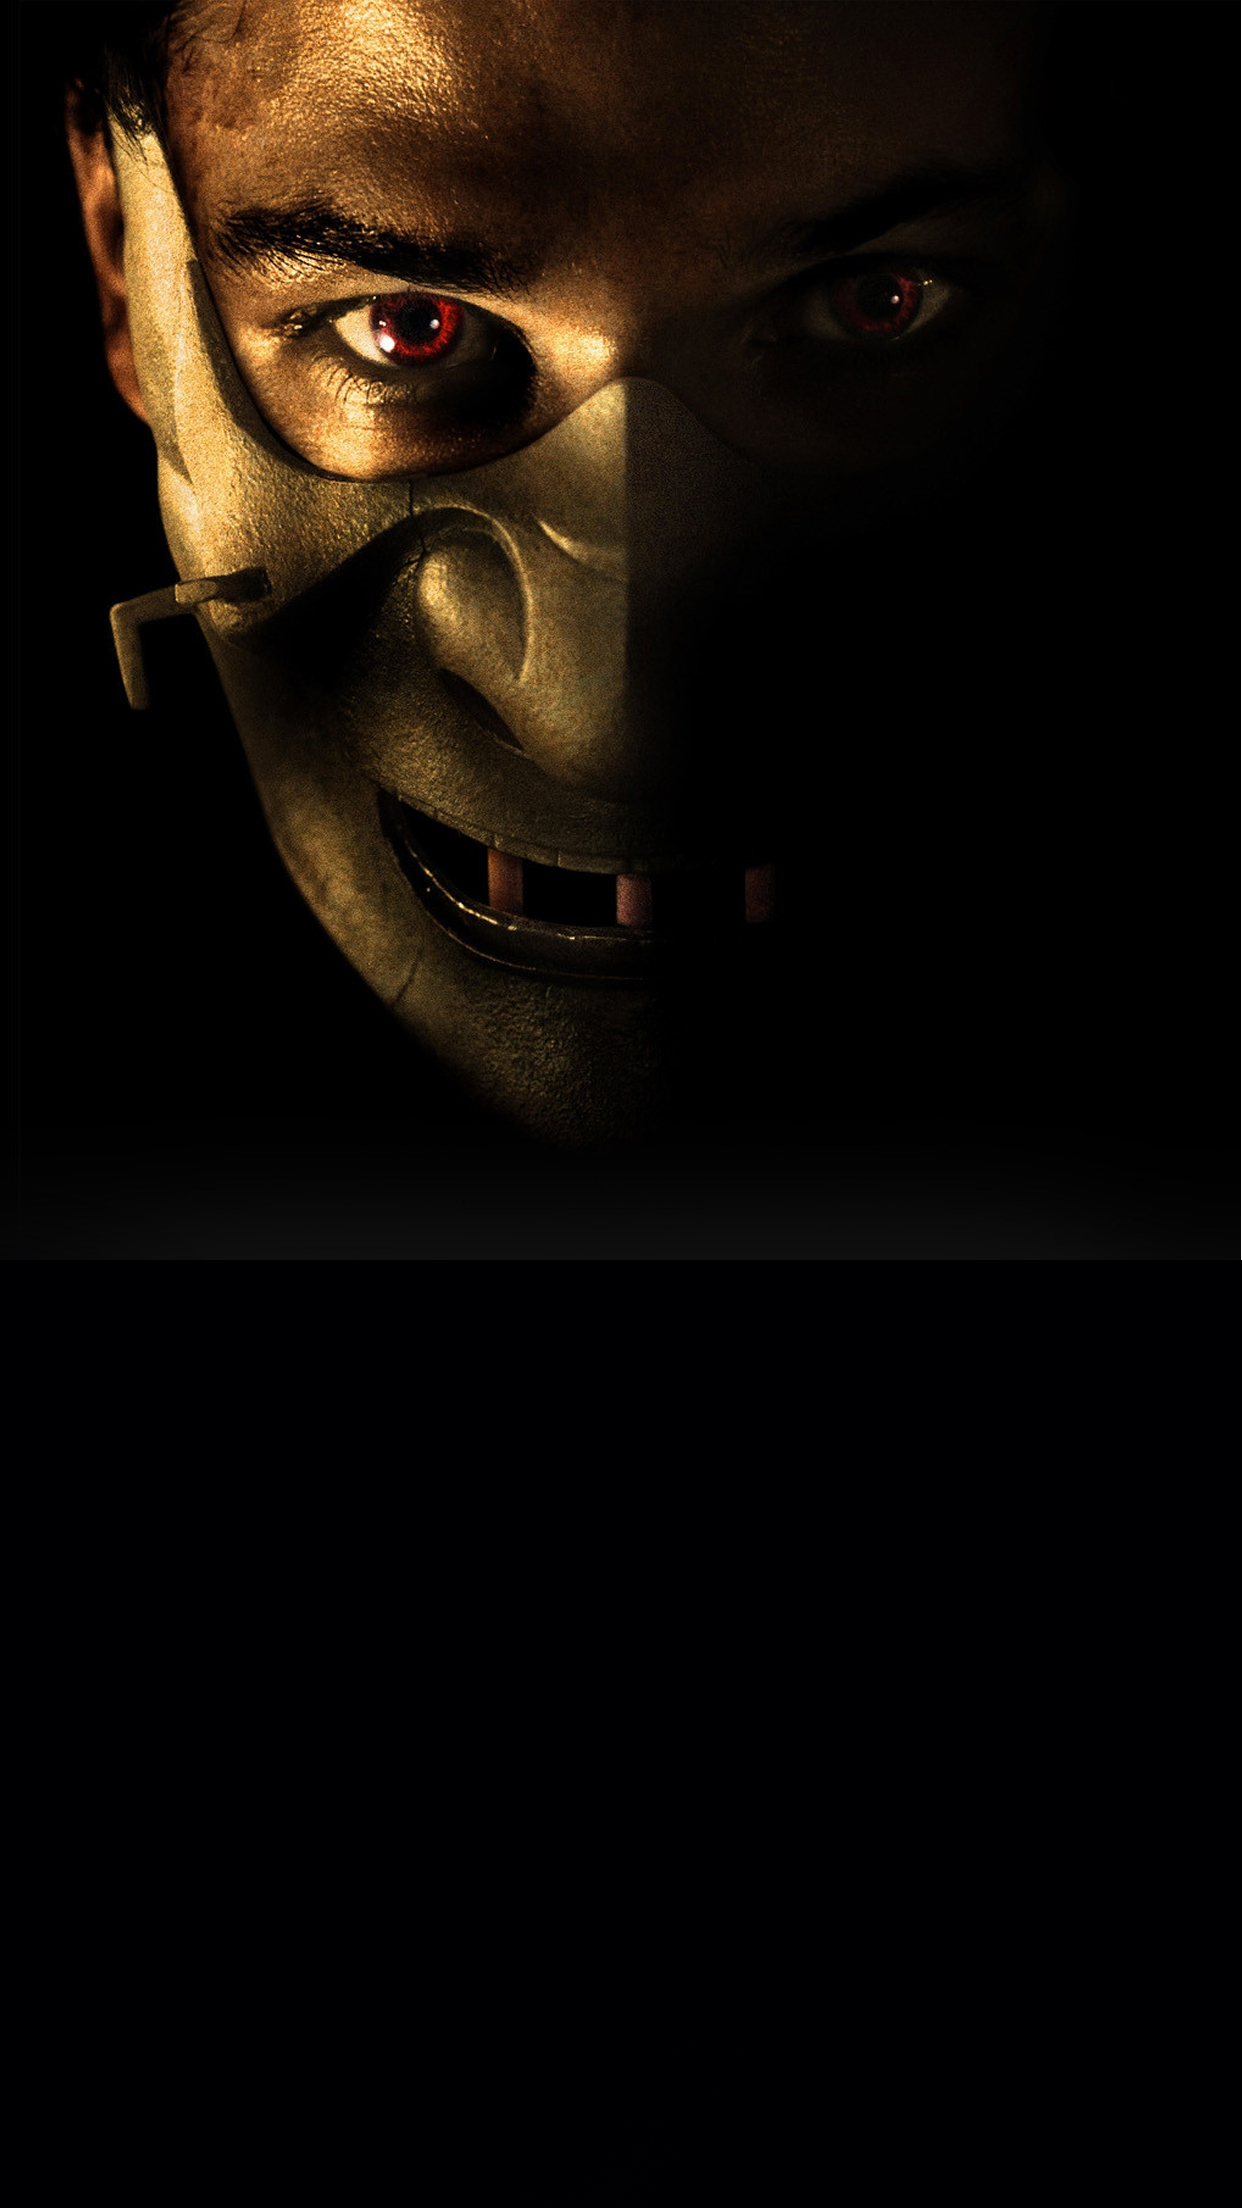 Hannibal Mask iPhone 3Wallpapers Parallax  Les 3 Wallpapers iPhone du jour (05/06/2015)